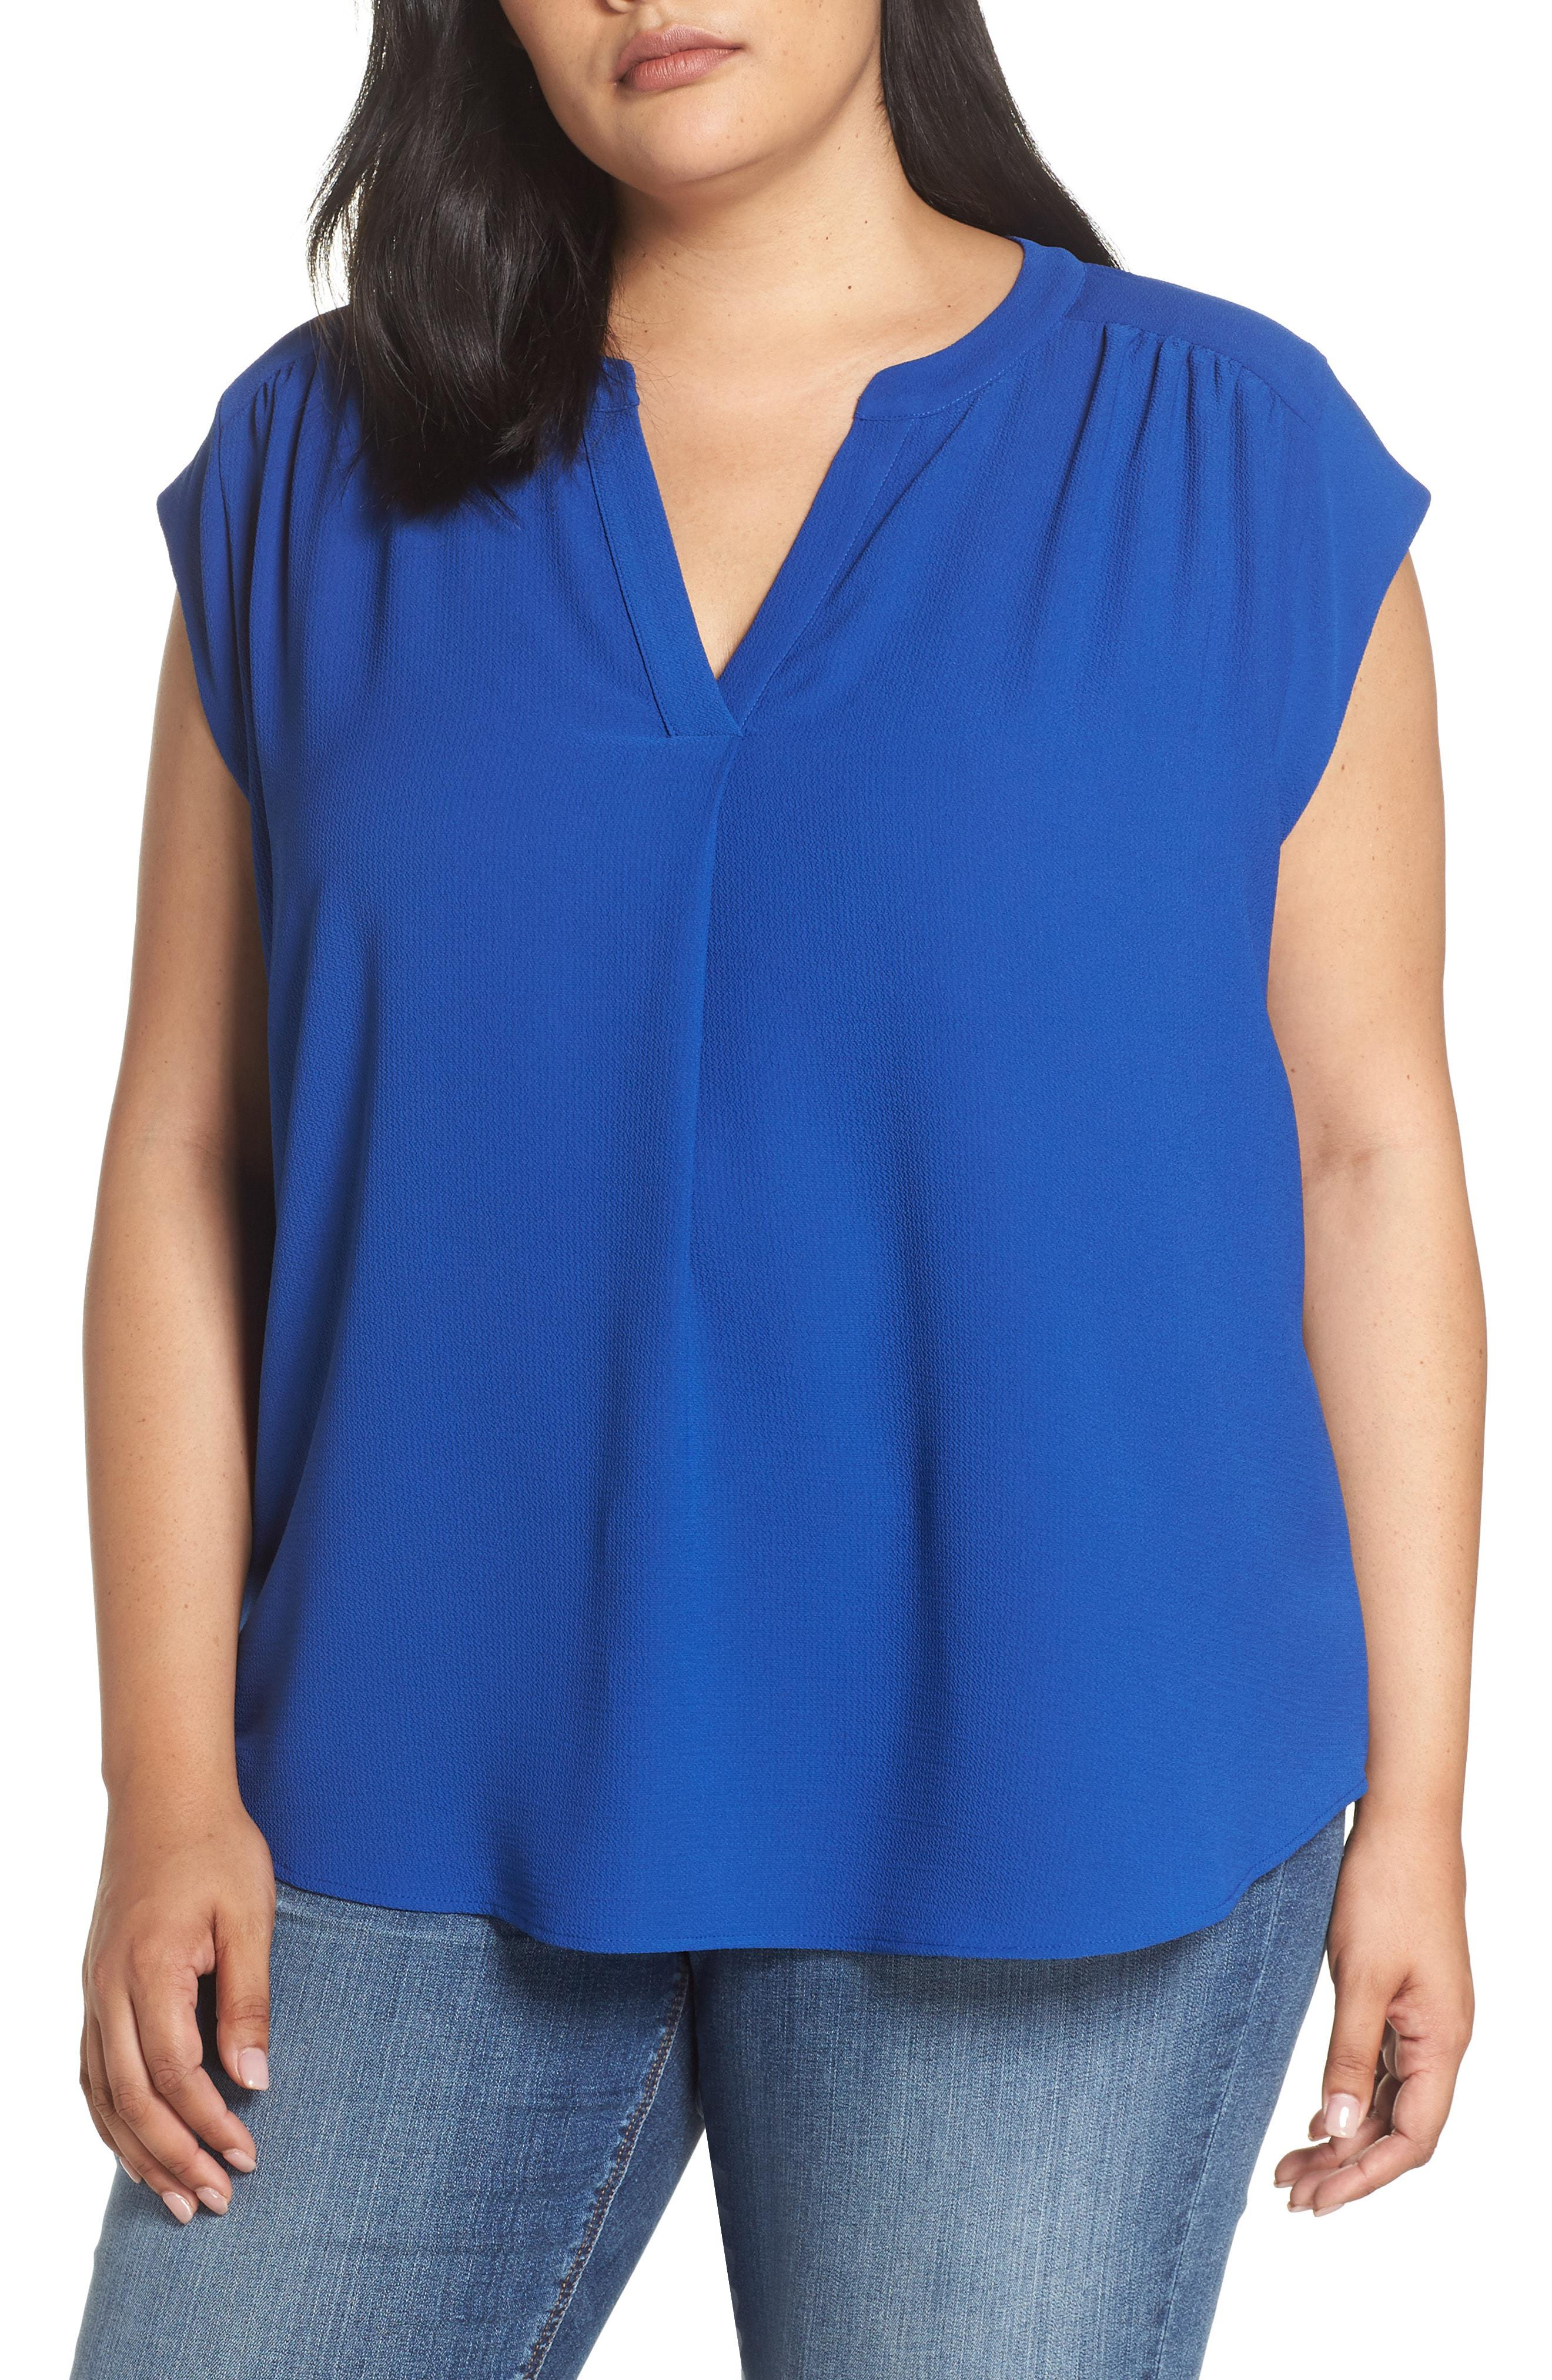 8947224c297 Lyst - Gibson Split Neck Top in Blue - Save 38%